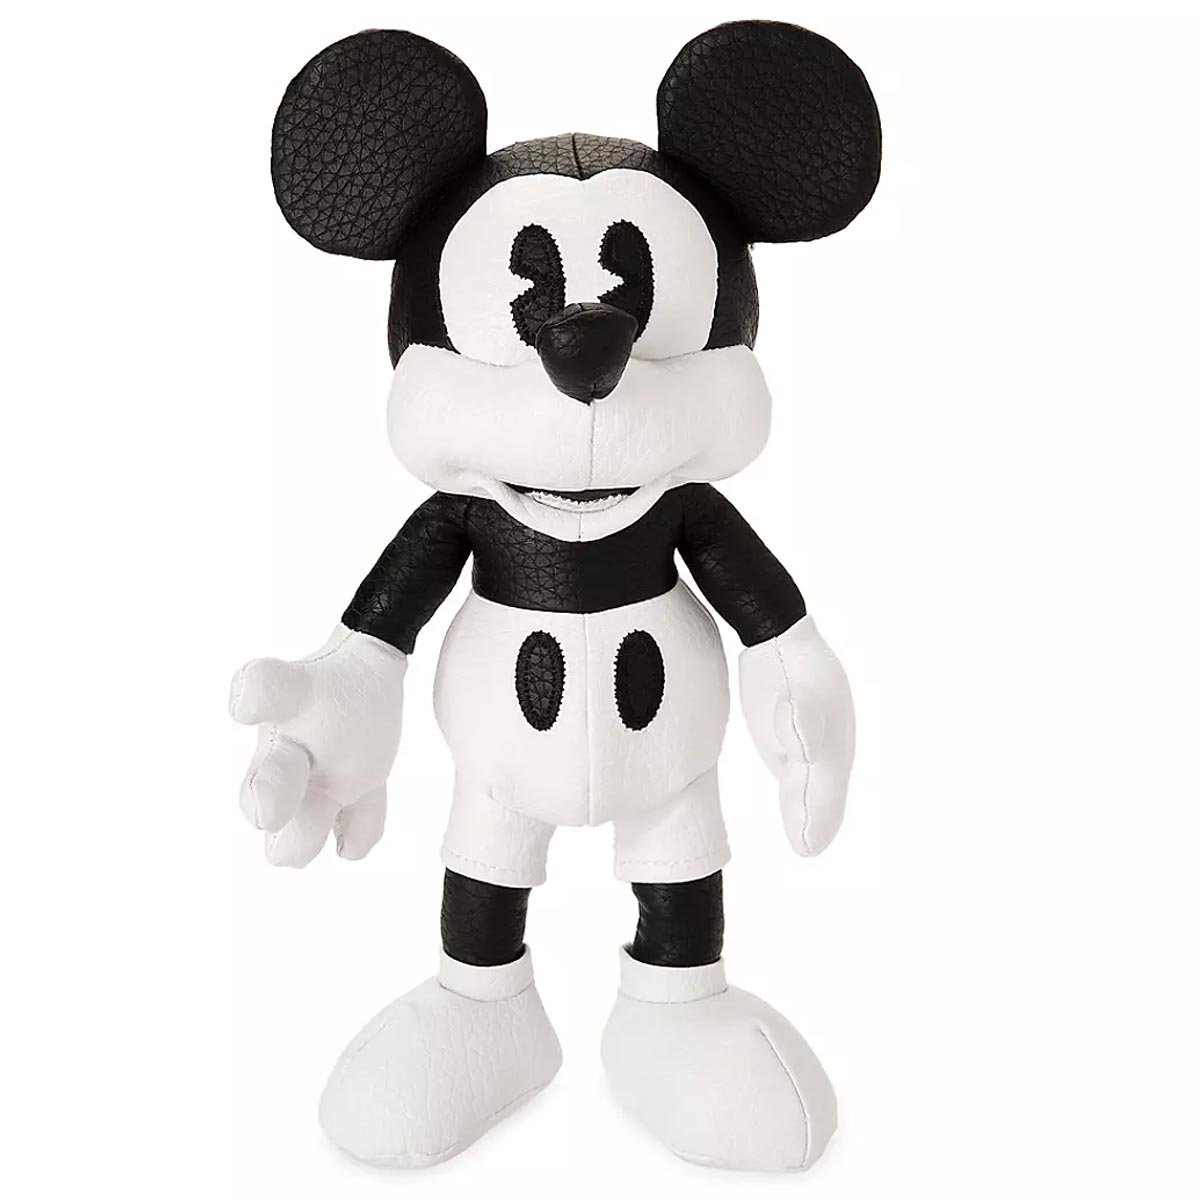 Mickey Mouse Simulated Black & White Leather Plush Exclusive